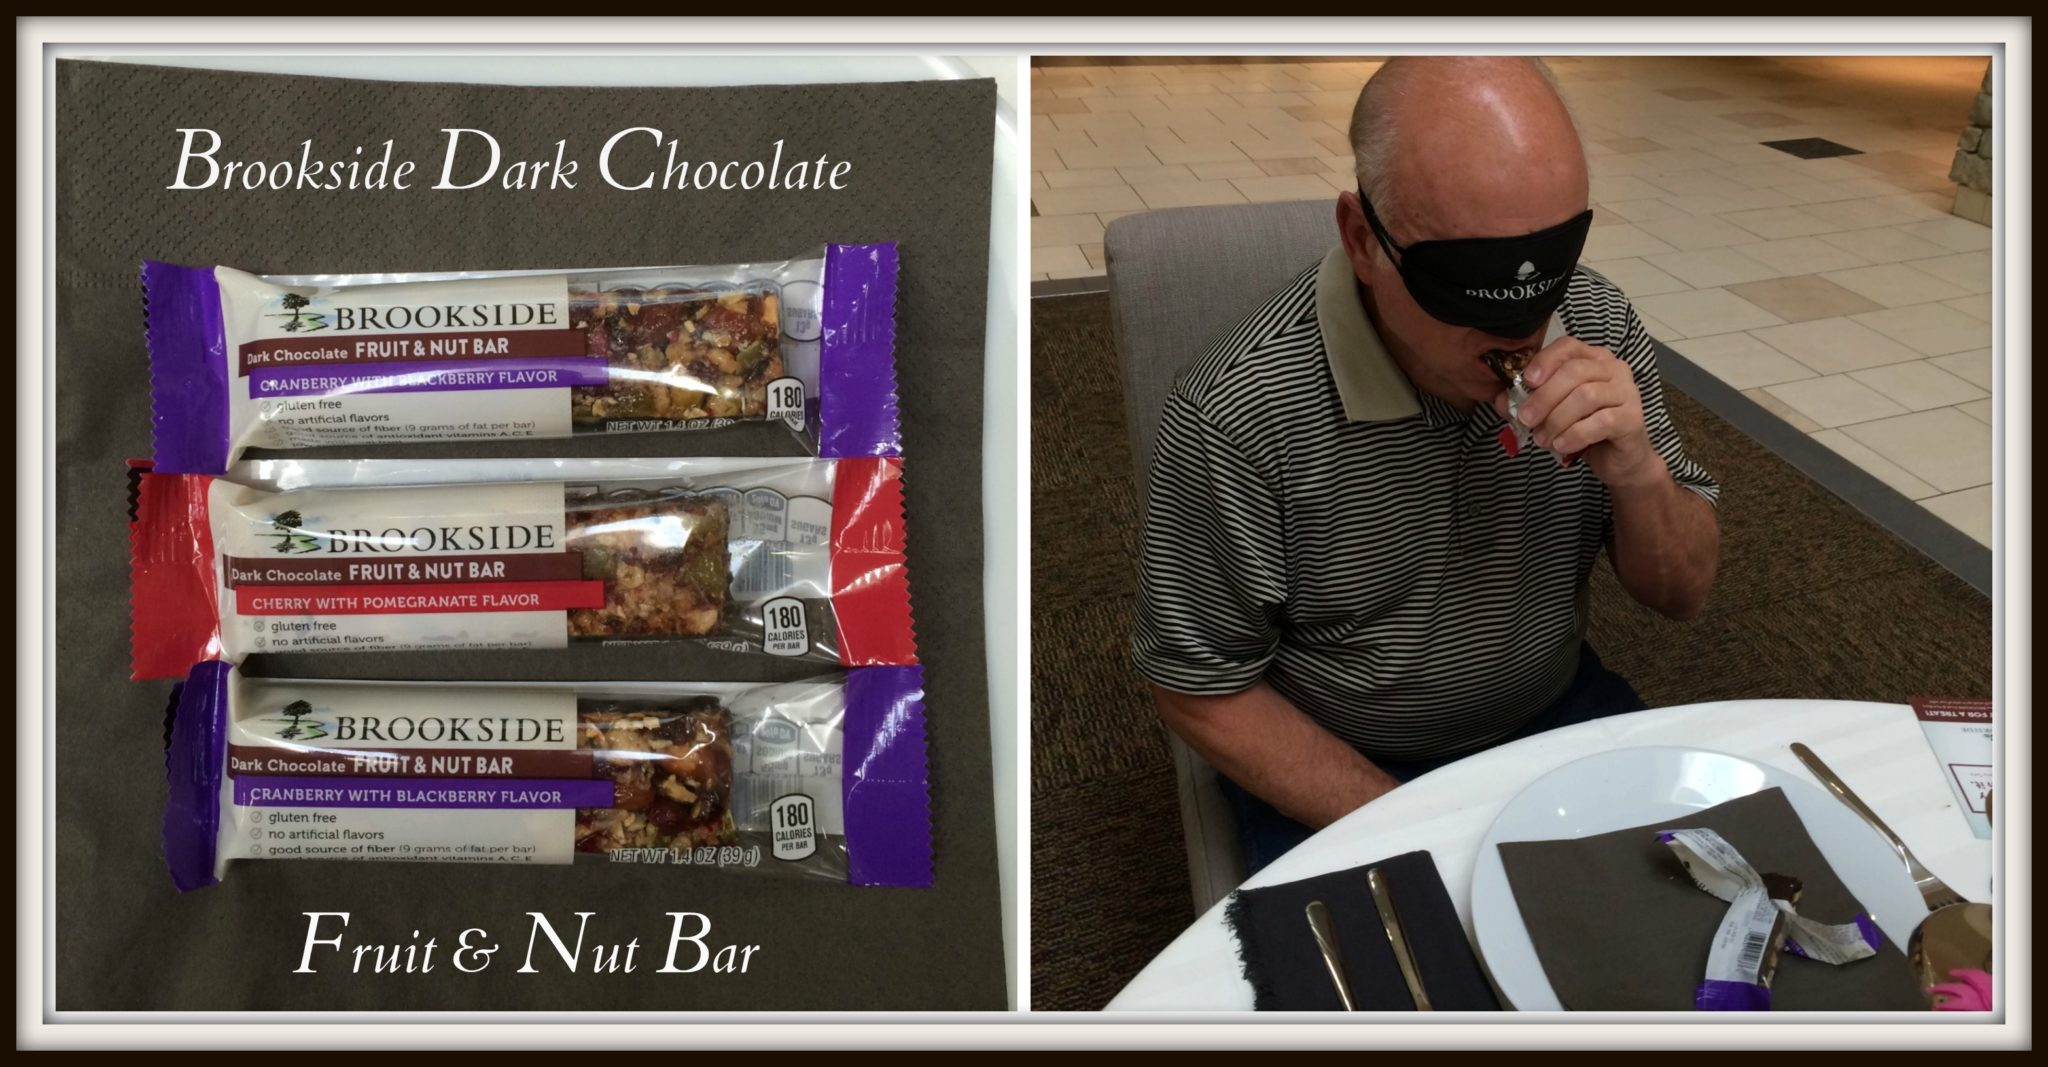 Brookside Chocolate Fruit & Nut Bars, Dark and Delicious